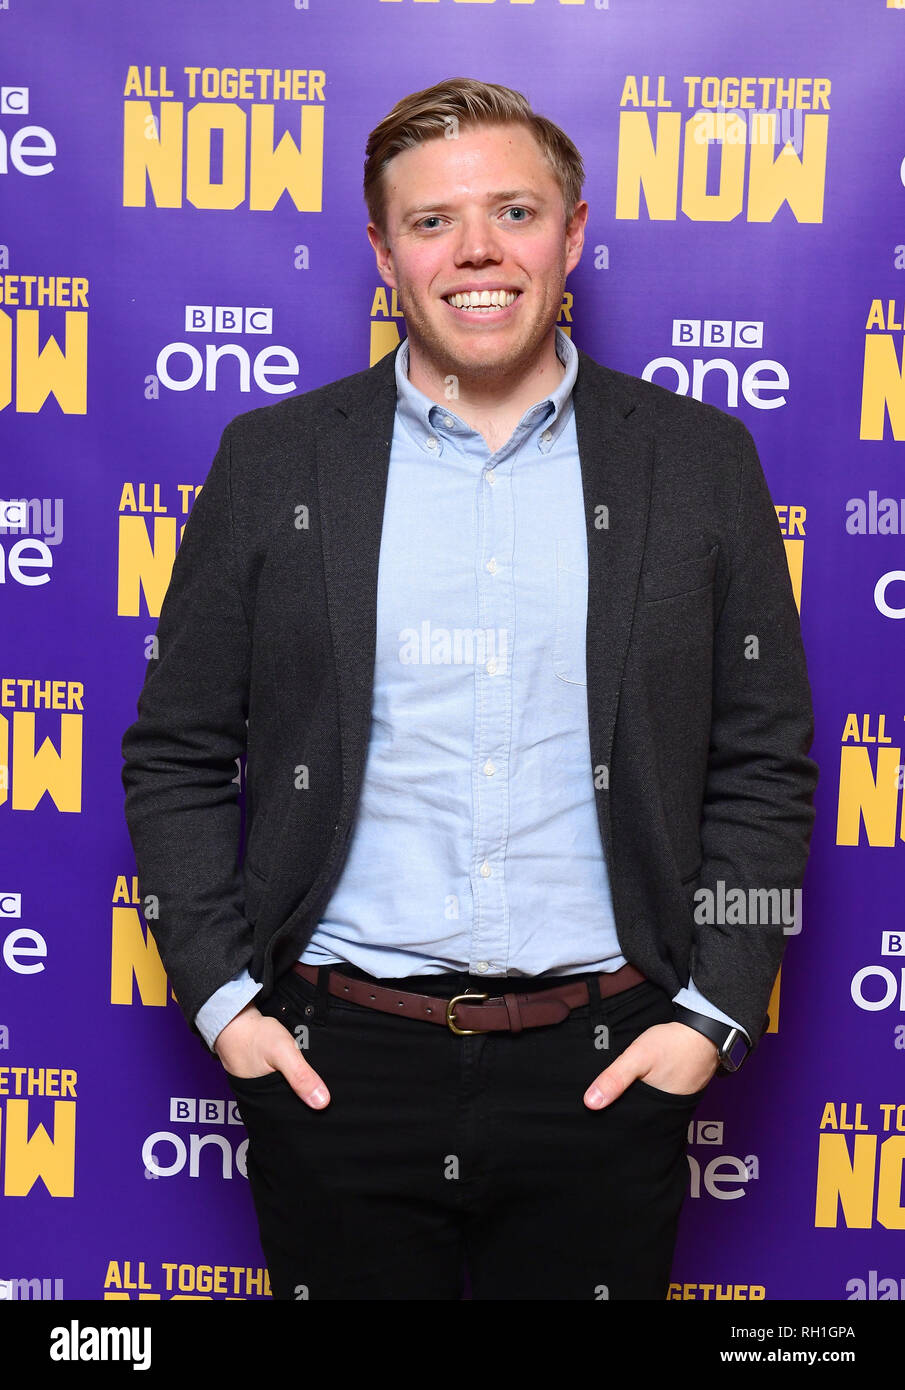 Rob Beckett in central London at the screening of their new BBC1 show, All Together Now. - Stock Image